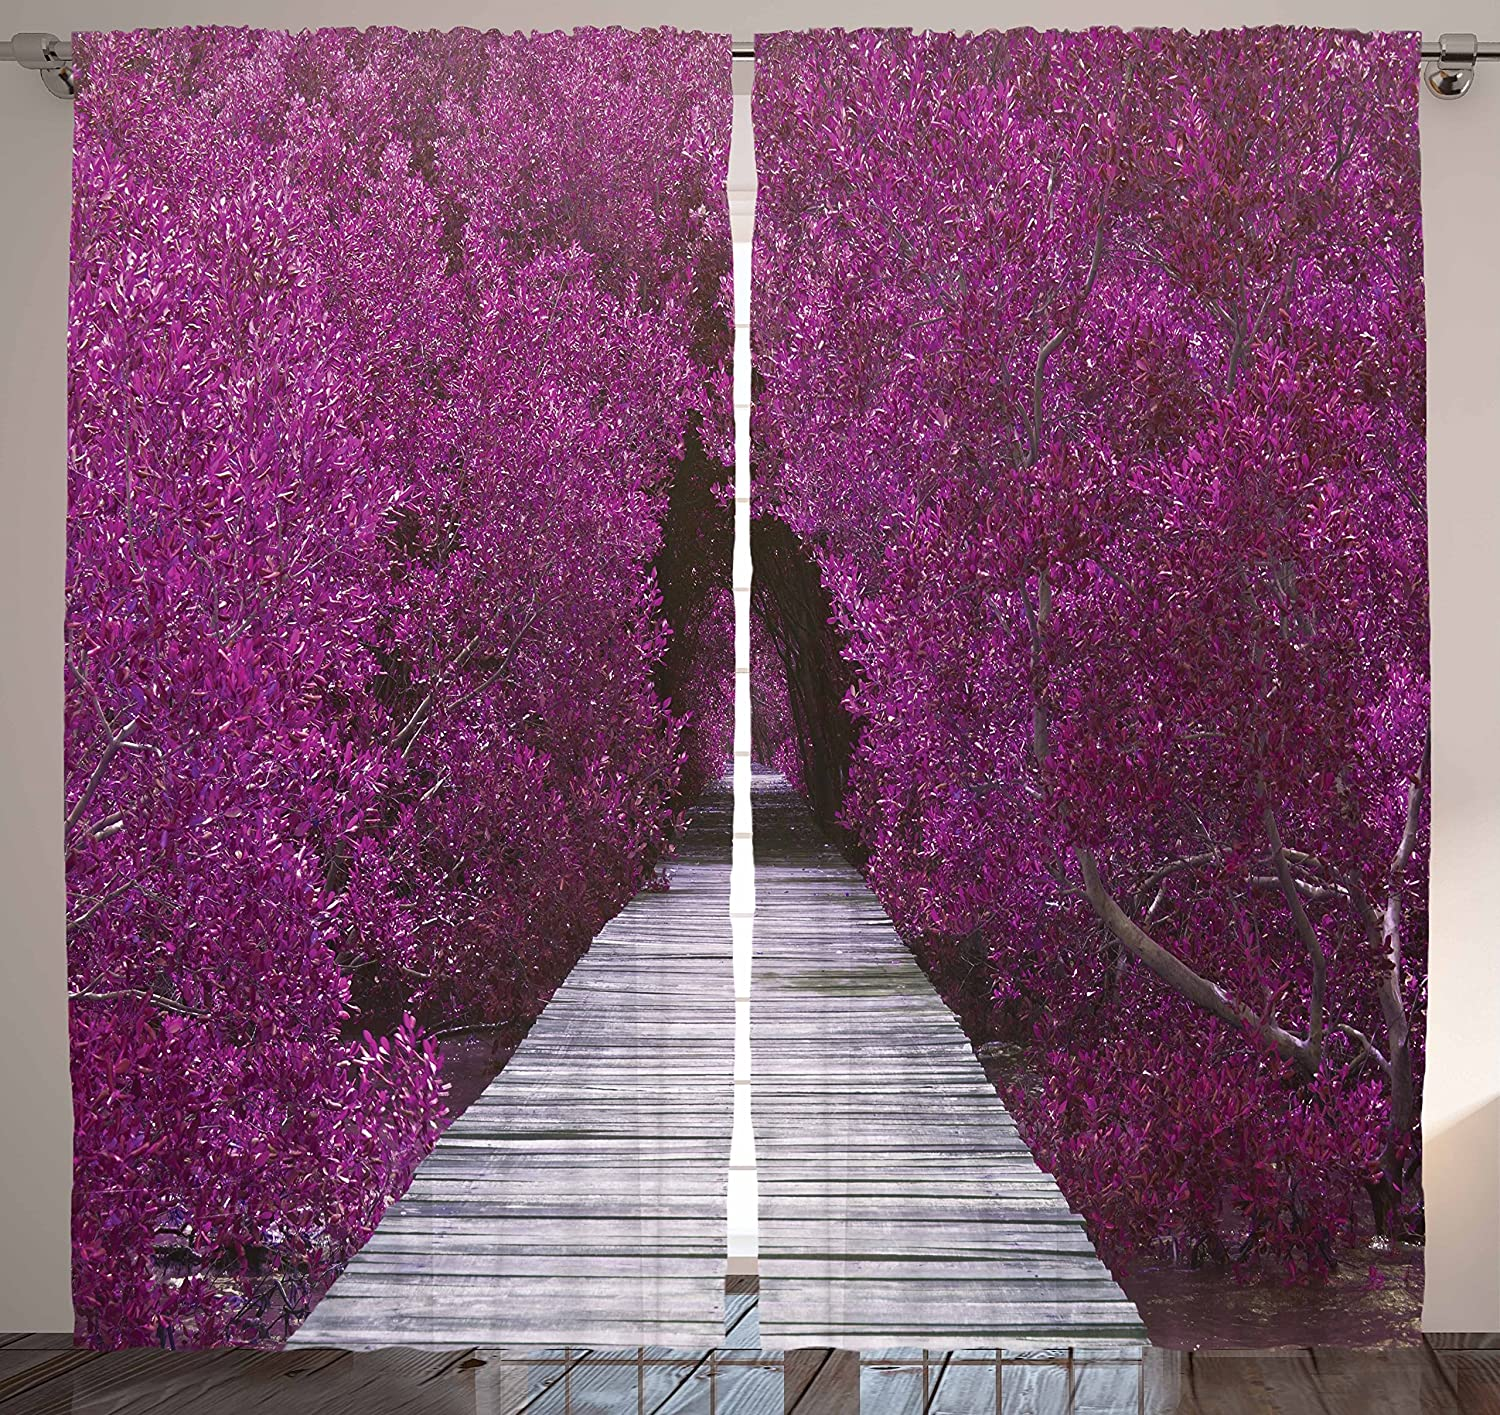 Ambesonne Eggplant Curtains Nature Landscape Decor, Purple Flower Trees Aisle Panoramic Prospective Theme View Picture Print, Bedroom Living Room Curtain 2 Panels Set, 108 X 90 Inches, Purple Gray